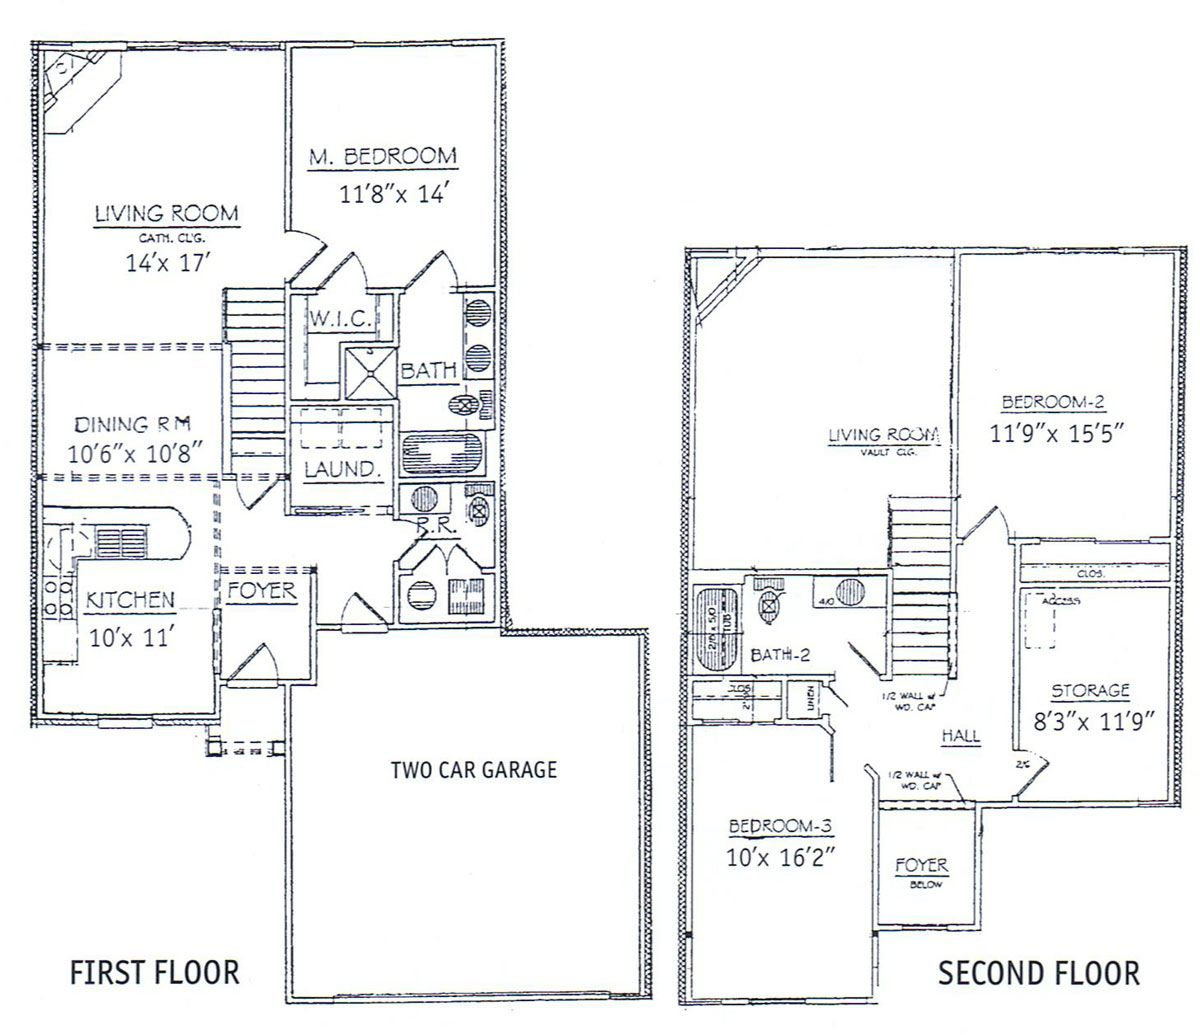 3 bedrooms floor plans 2 story bdrm basement the two for 2 story house plans